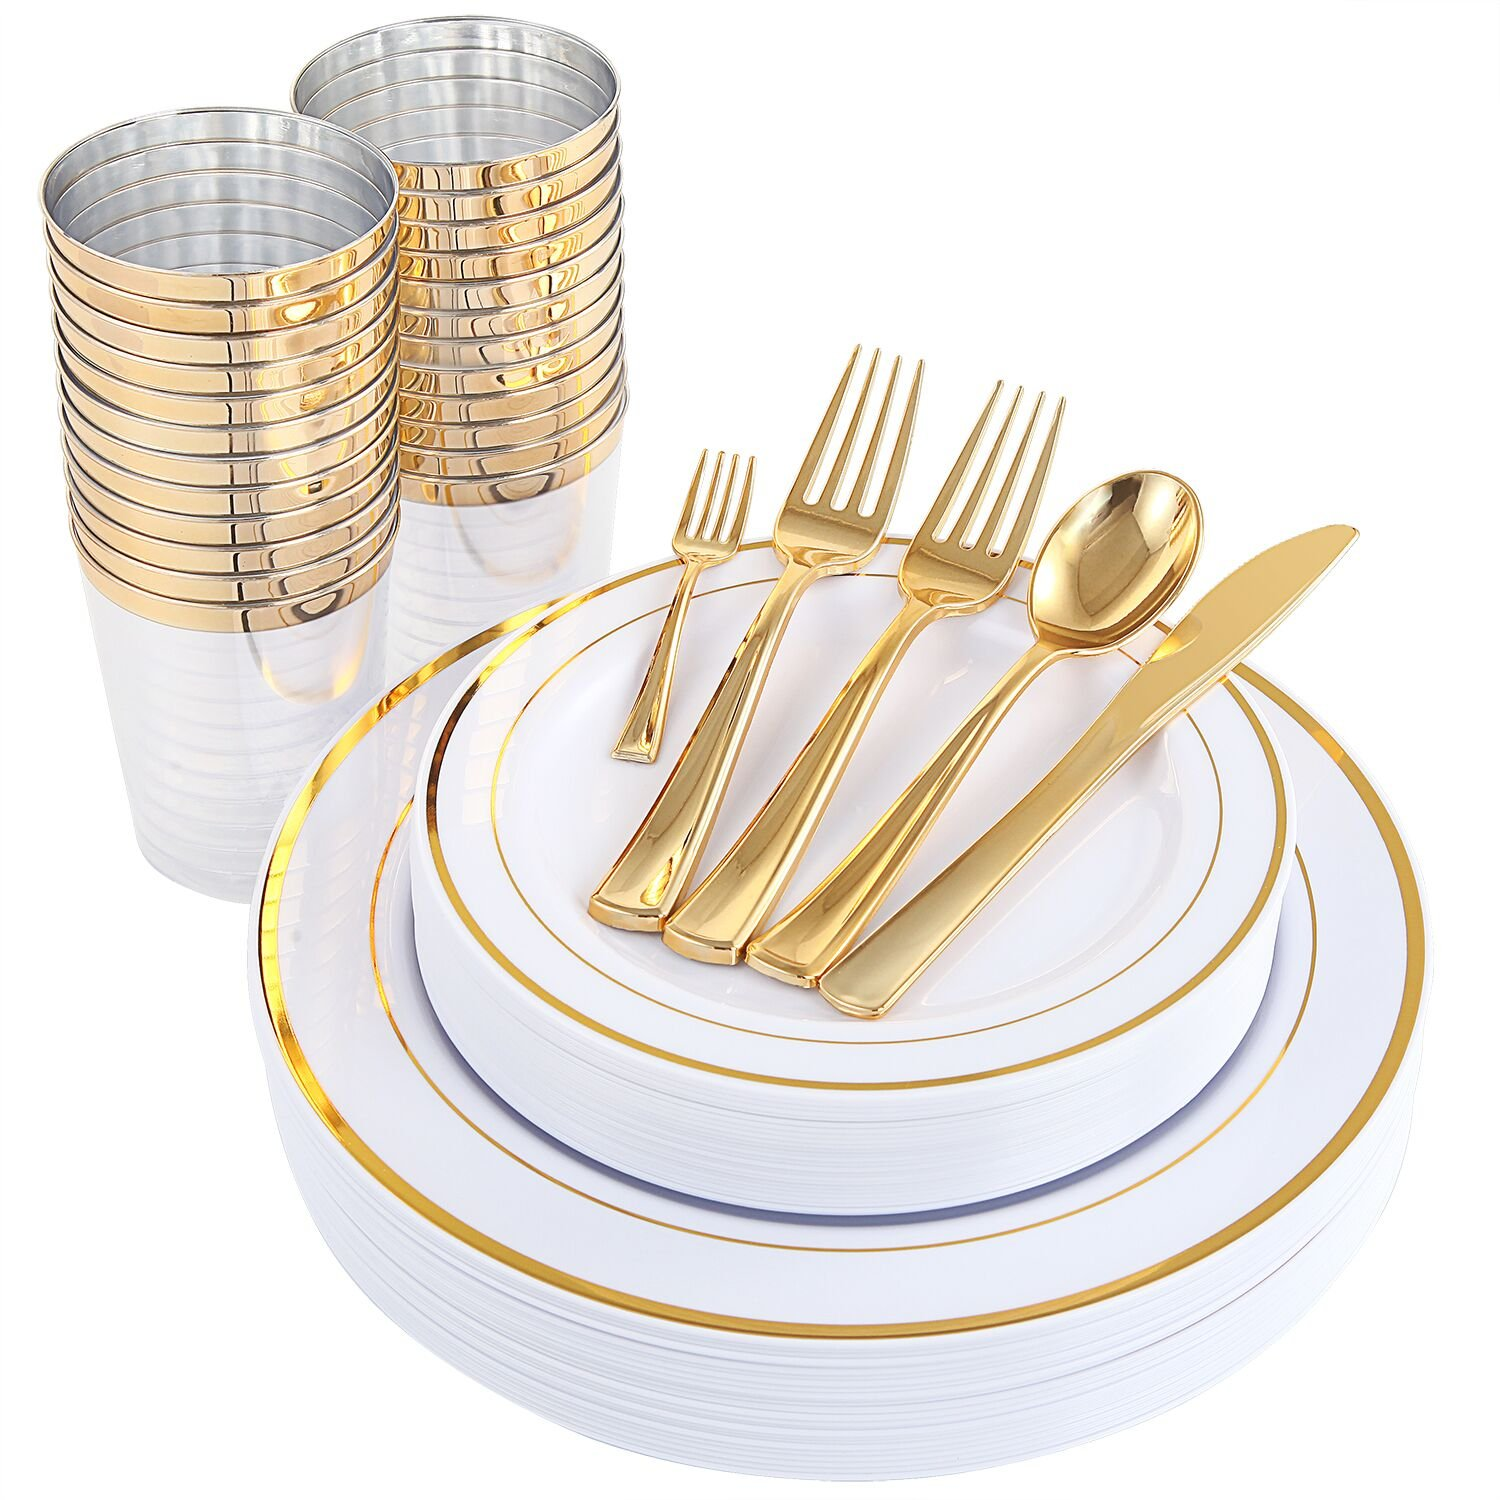 WDF 25Guest Gold Plastic Plates with Gold Silverware,Disposable Cups-include 25 Dinner Plates, 25 Salad Plates, 50 Forks, 25 Knives, 25 Spoons &Plastic Cups/Bonus 25 Mini Forks (Dinnerware) by WDF